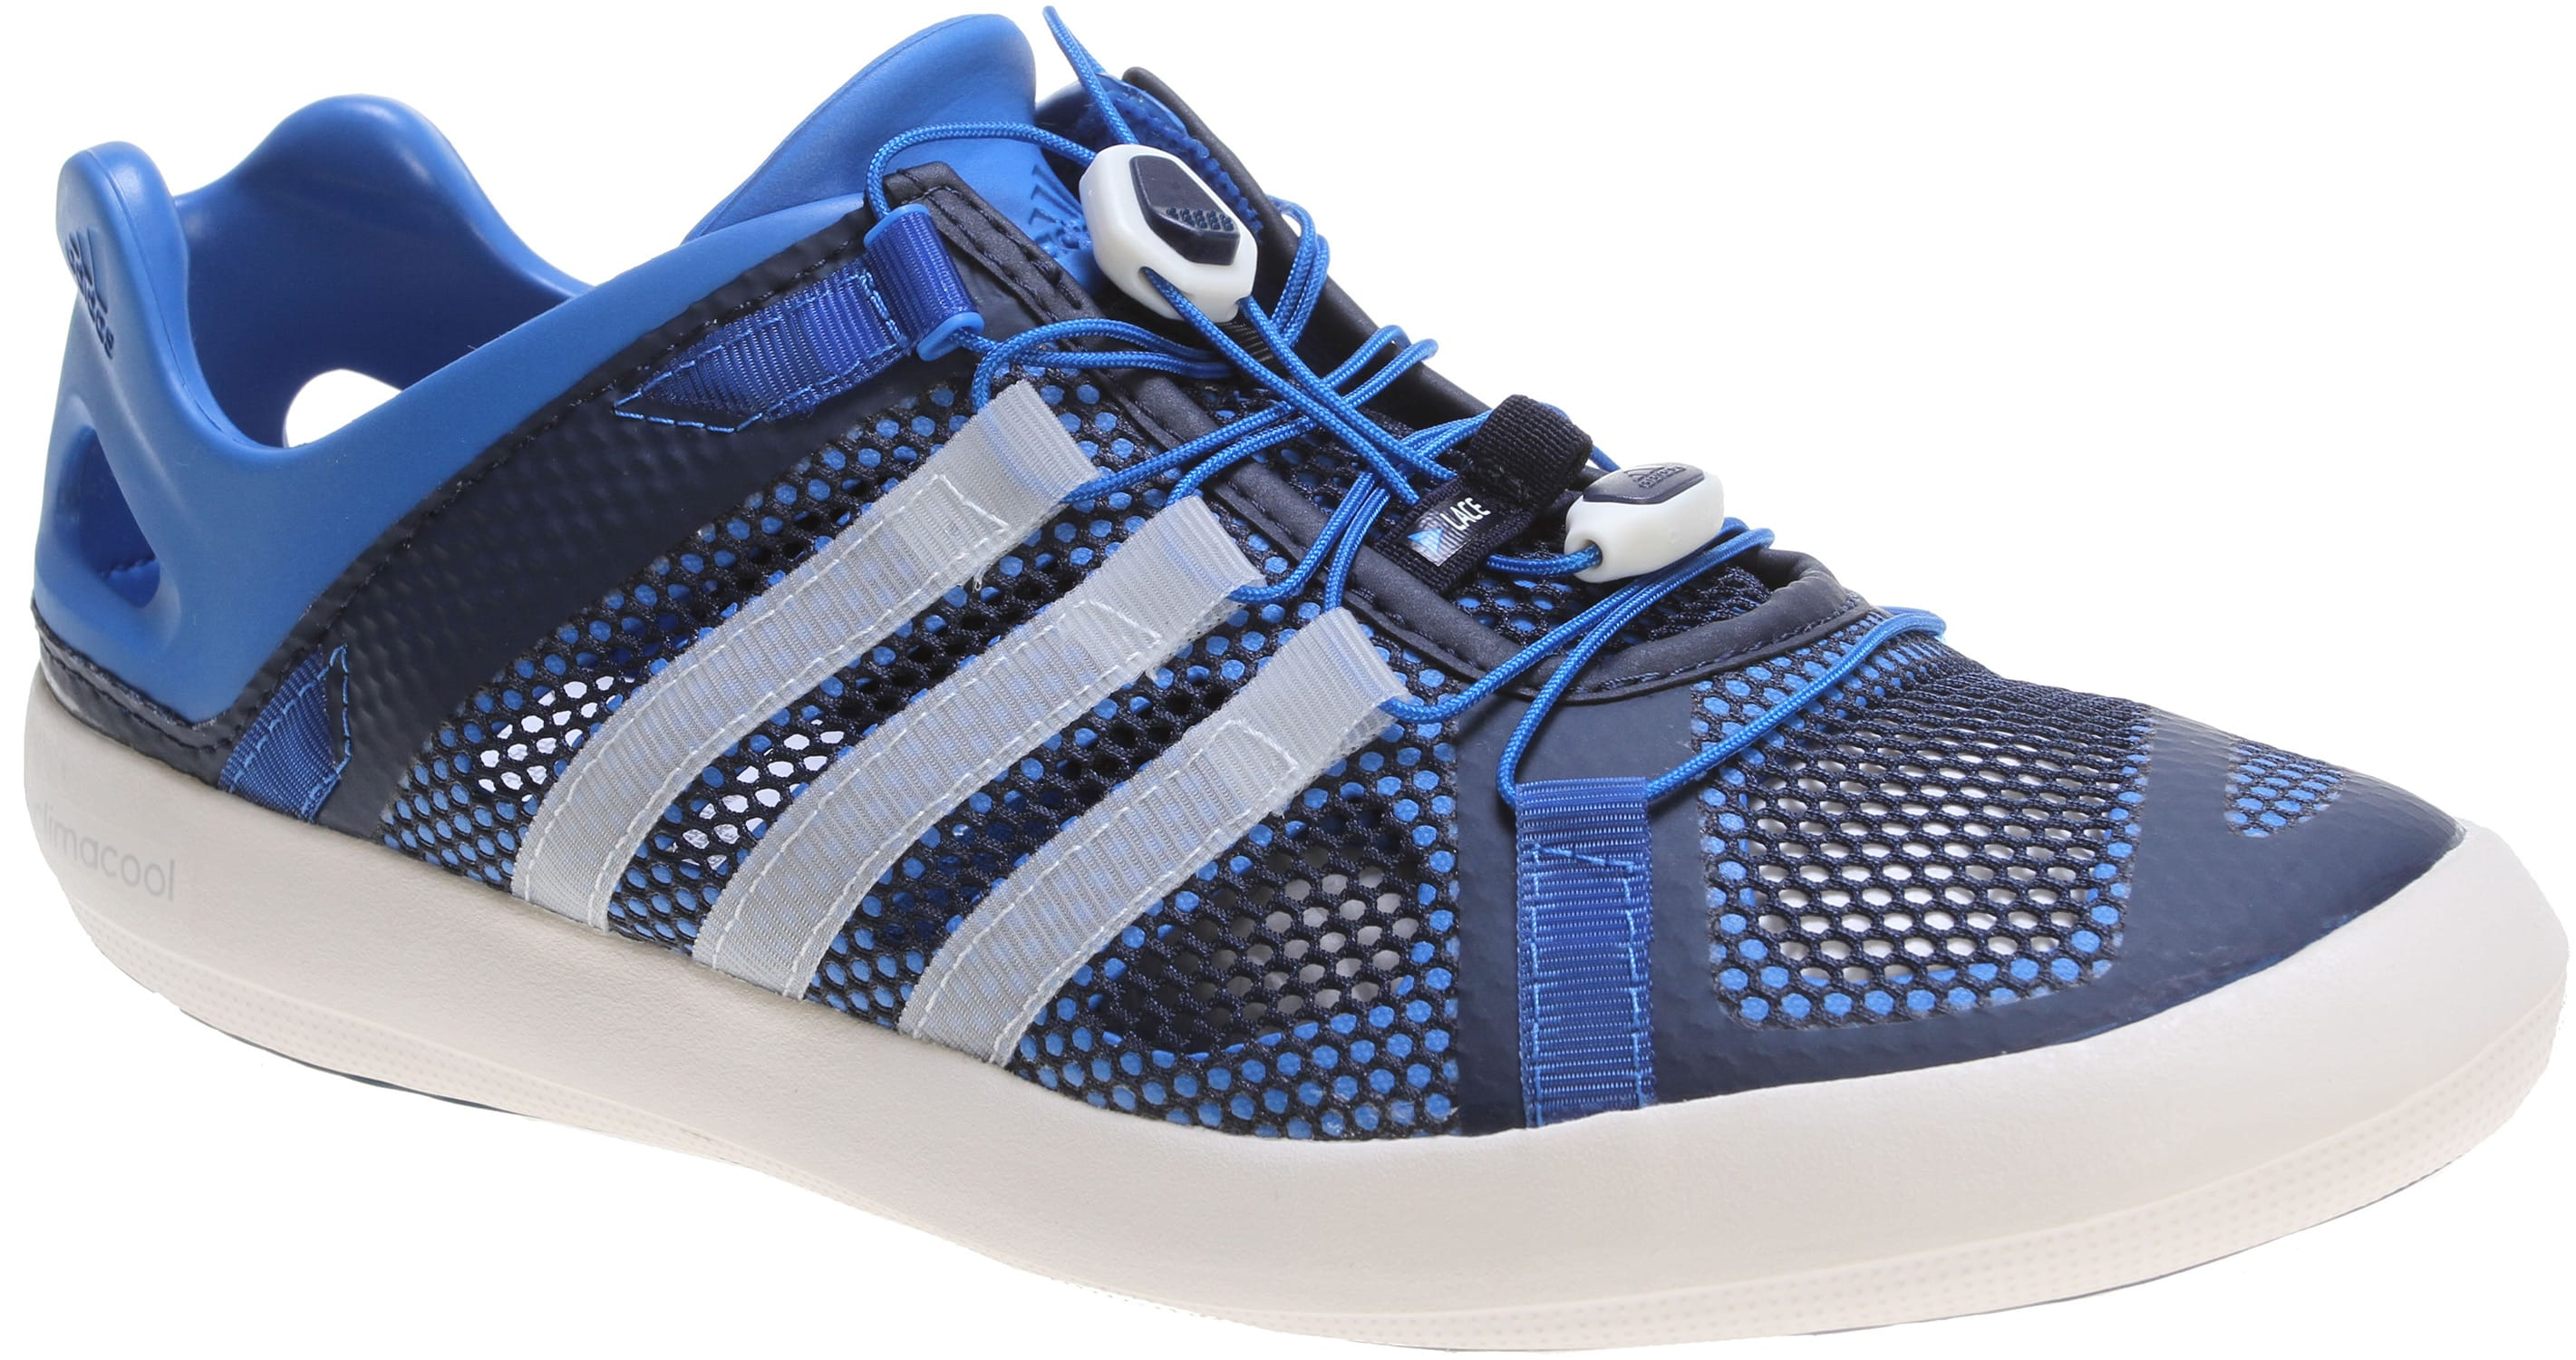 new concept b915b 24bb6 Adidas Climacool Boat Breeze Water Shoes - thumbnail 2